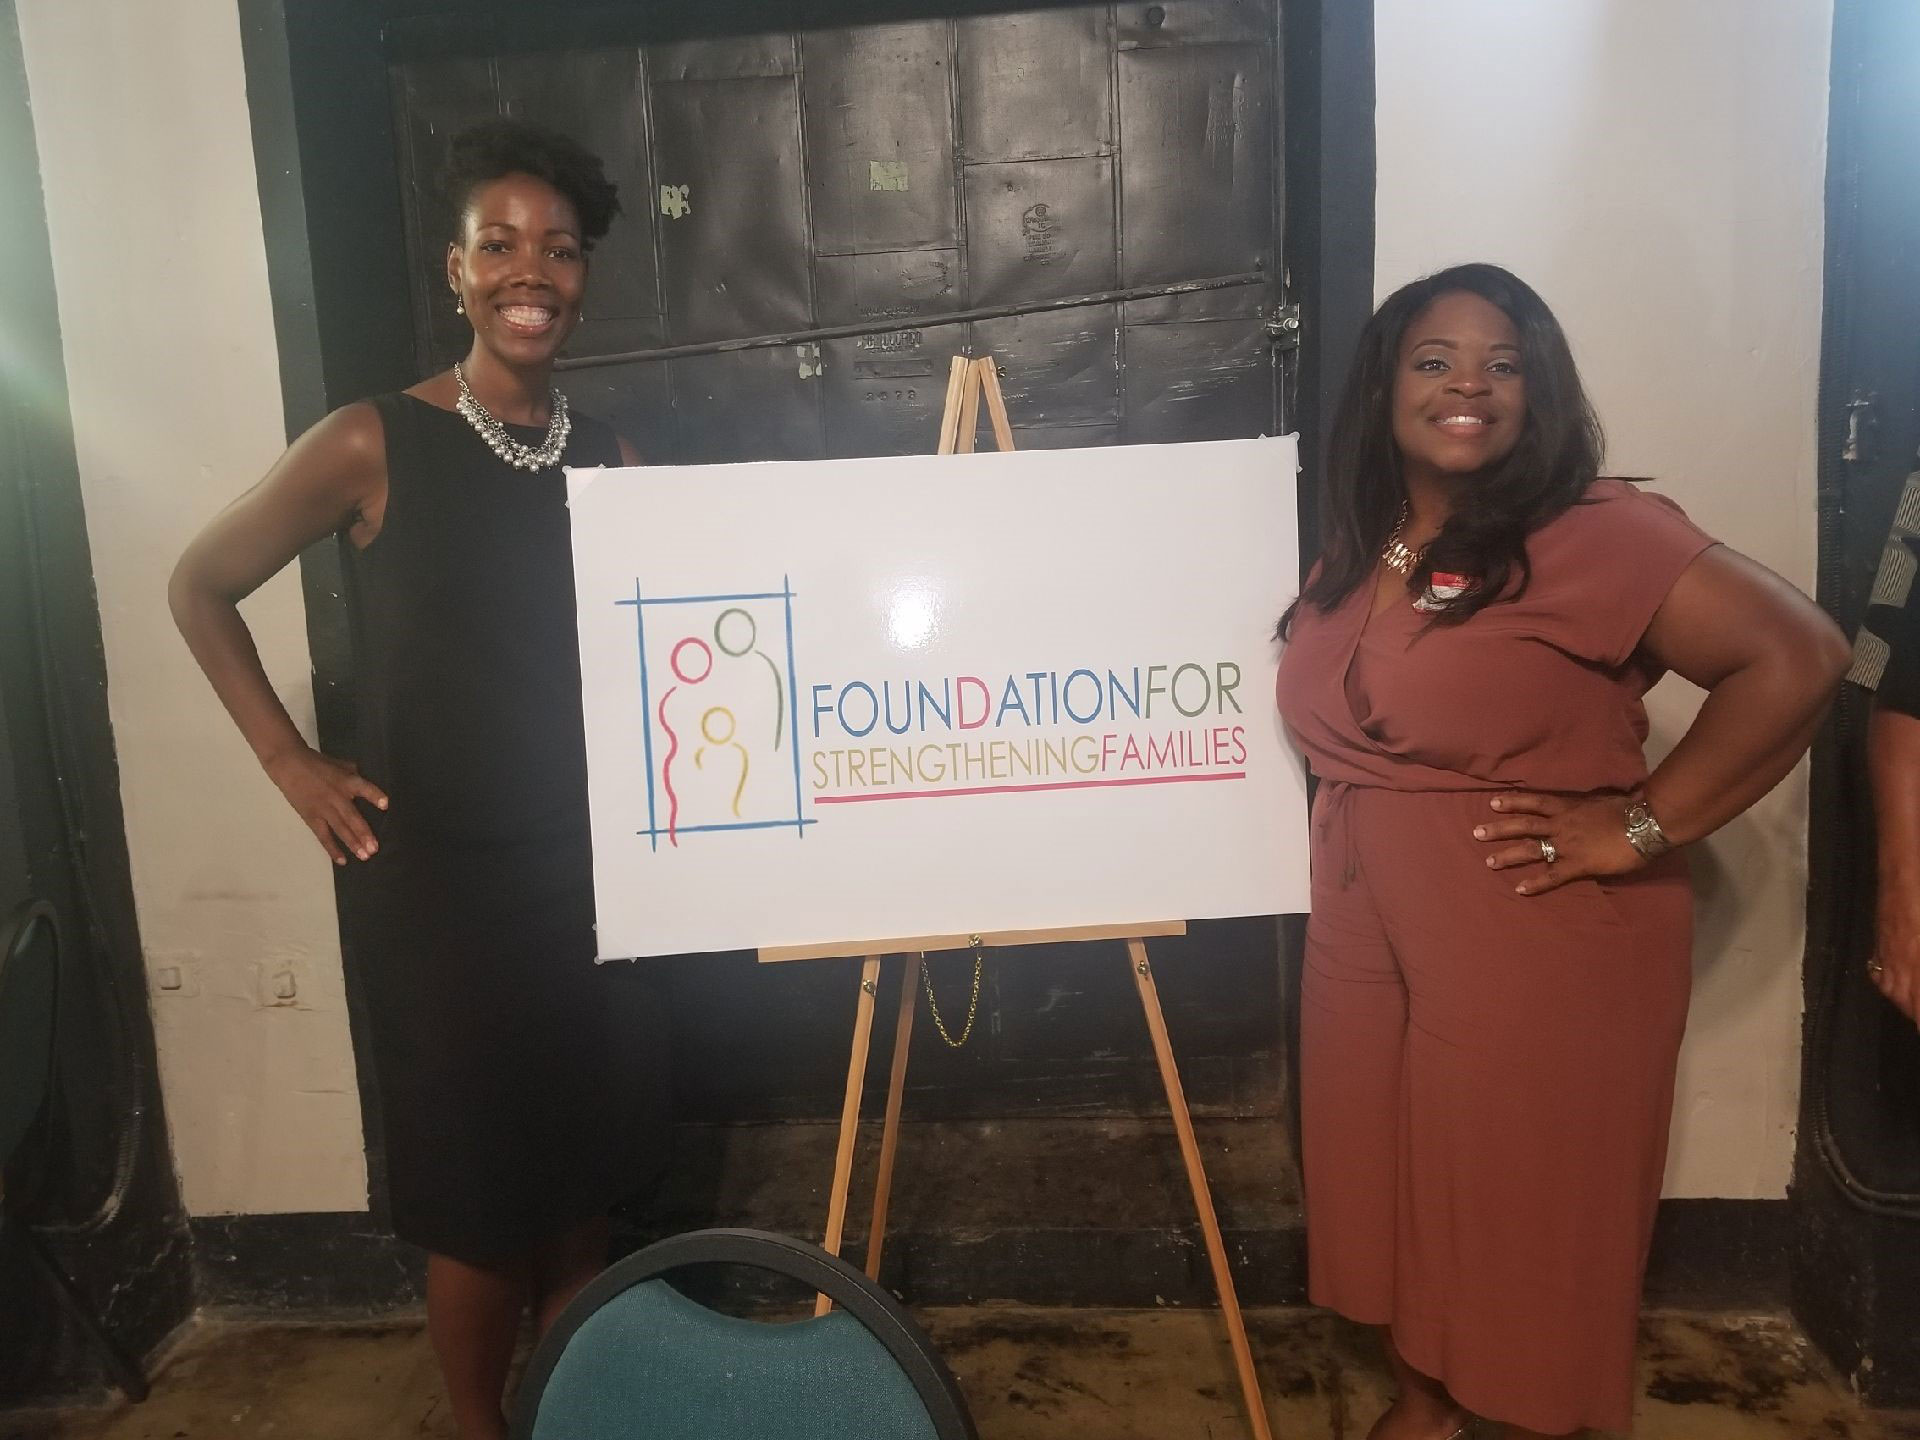 Foundation For Strengthening Families Early Childhood Education, Single Parent Help, Community Resource, Daycare in St. Louis